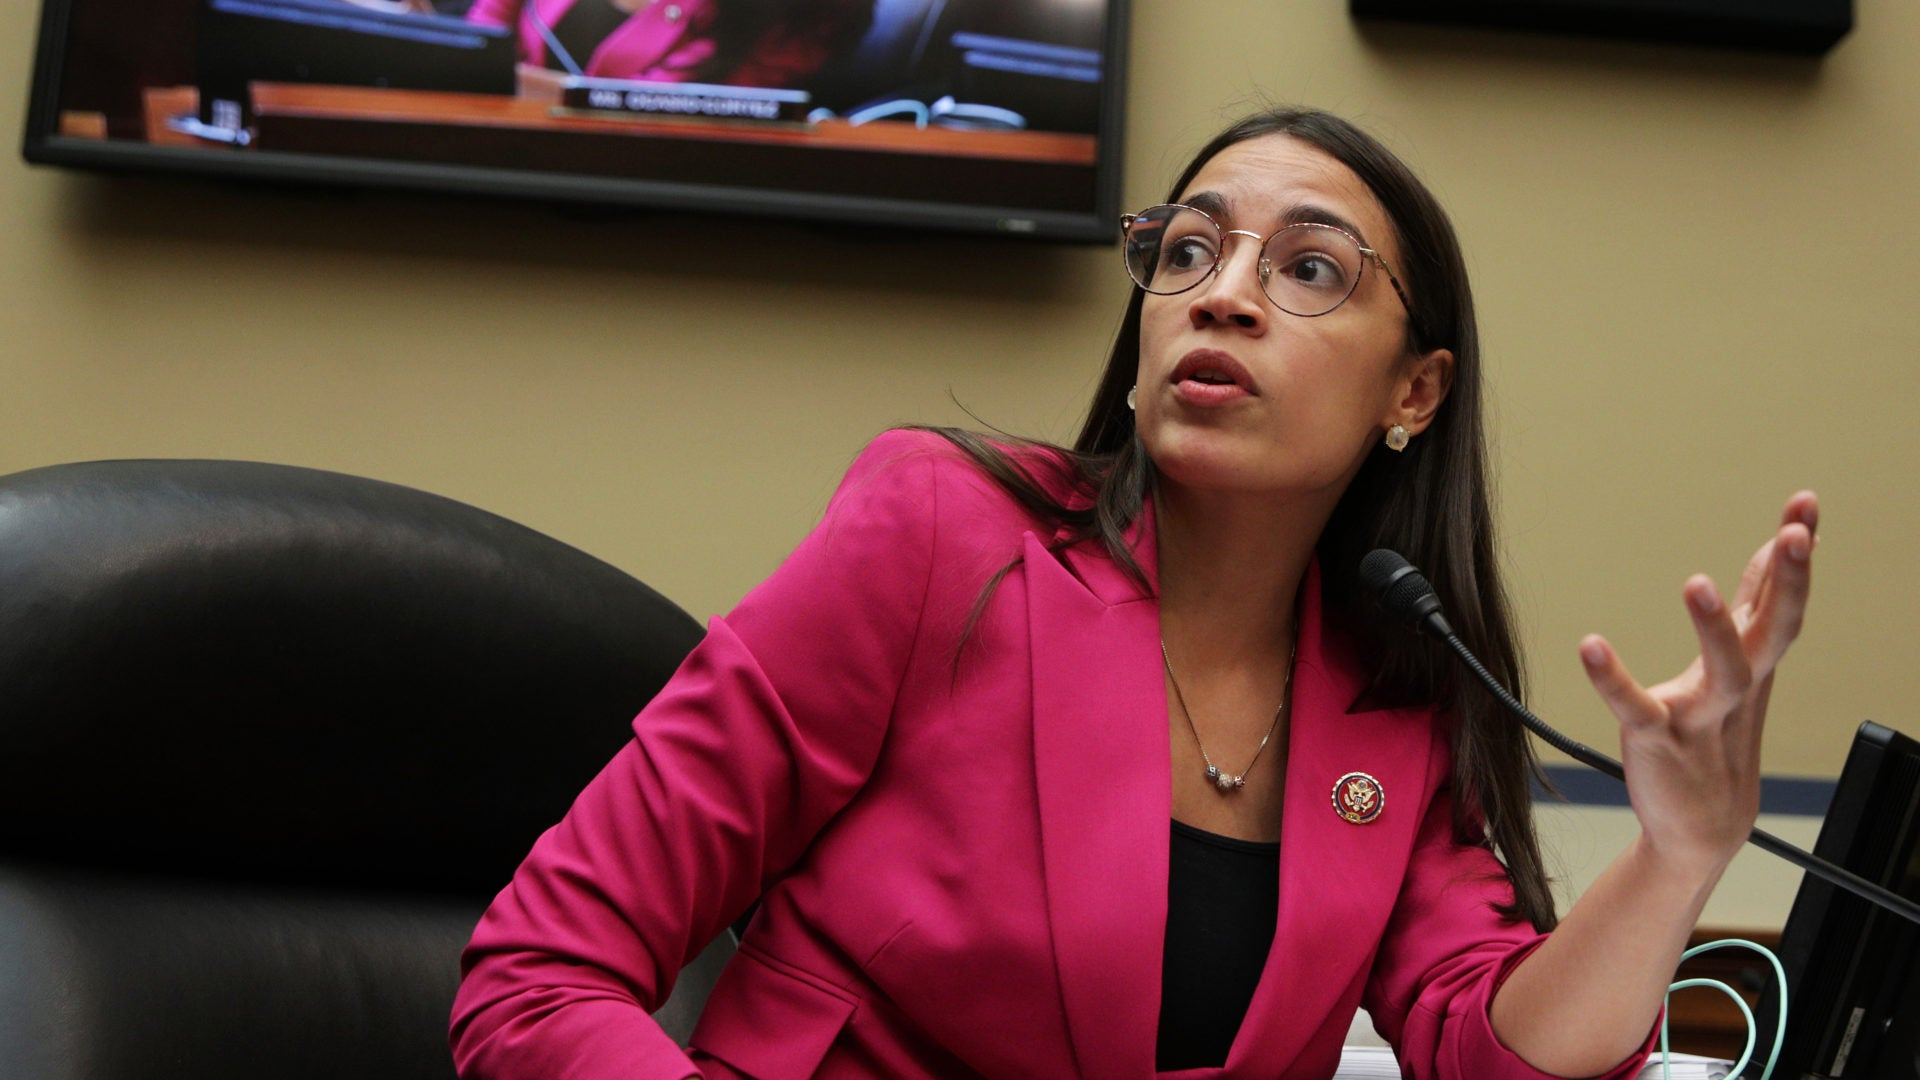 Louisiana Cop Under Scrutiny After Saying Rep. Alexandria Ocasio-Cortez 'Needs A Round'